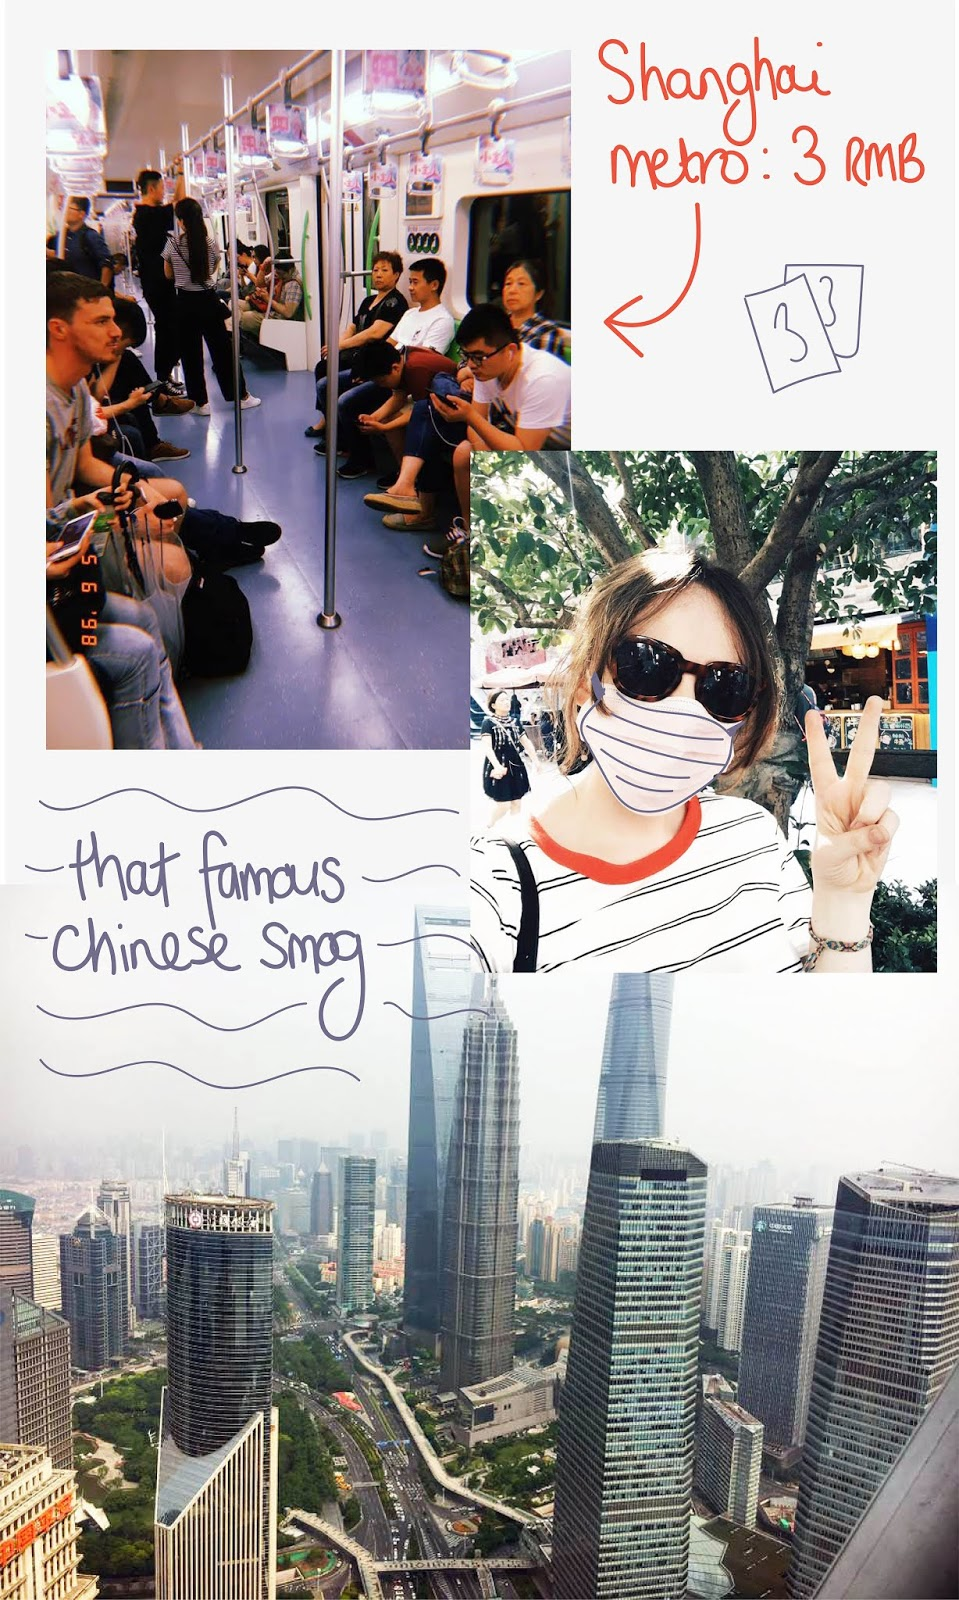 collage of Chinese metro carriage, tourist wearing pollution mask and the view of the Shanghai skyline from the oriental pearl tv tower observation deck